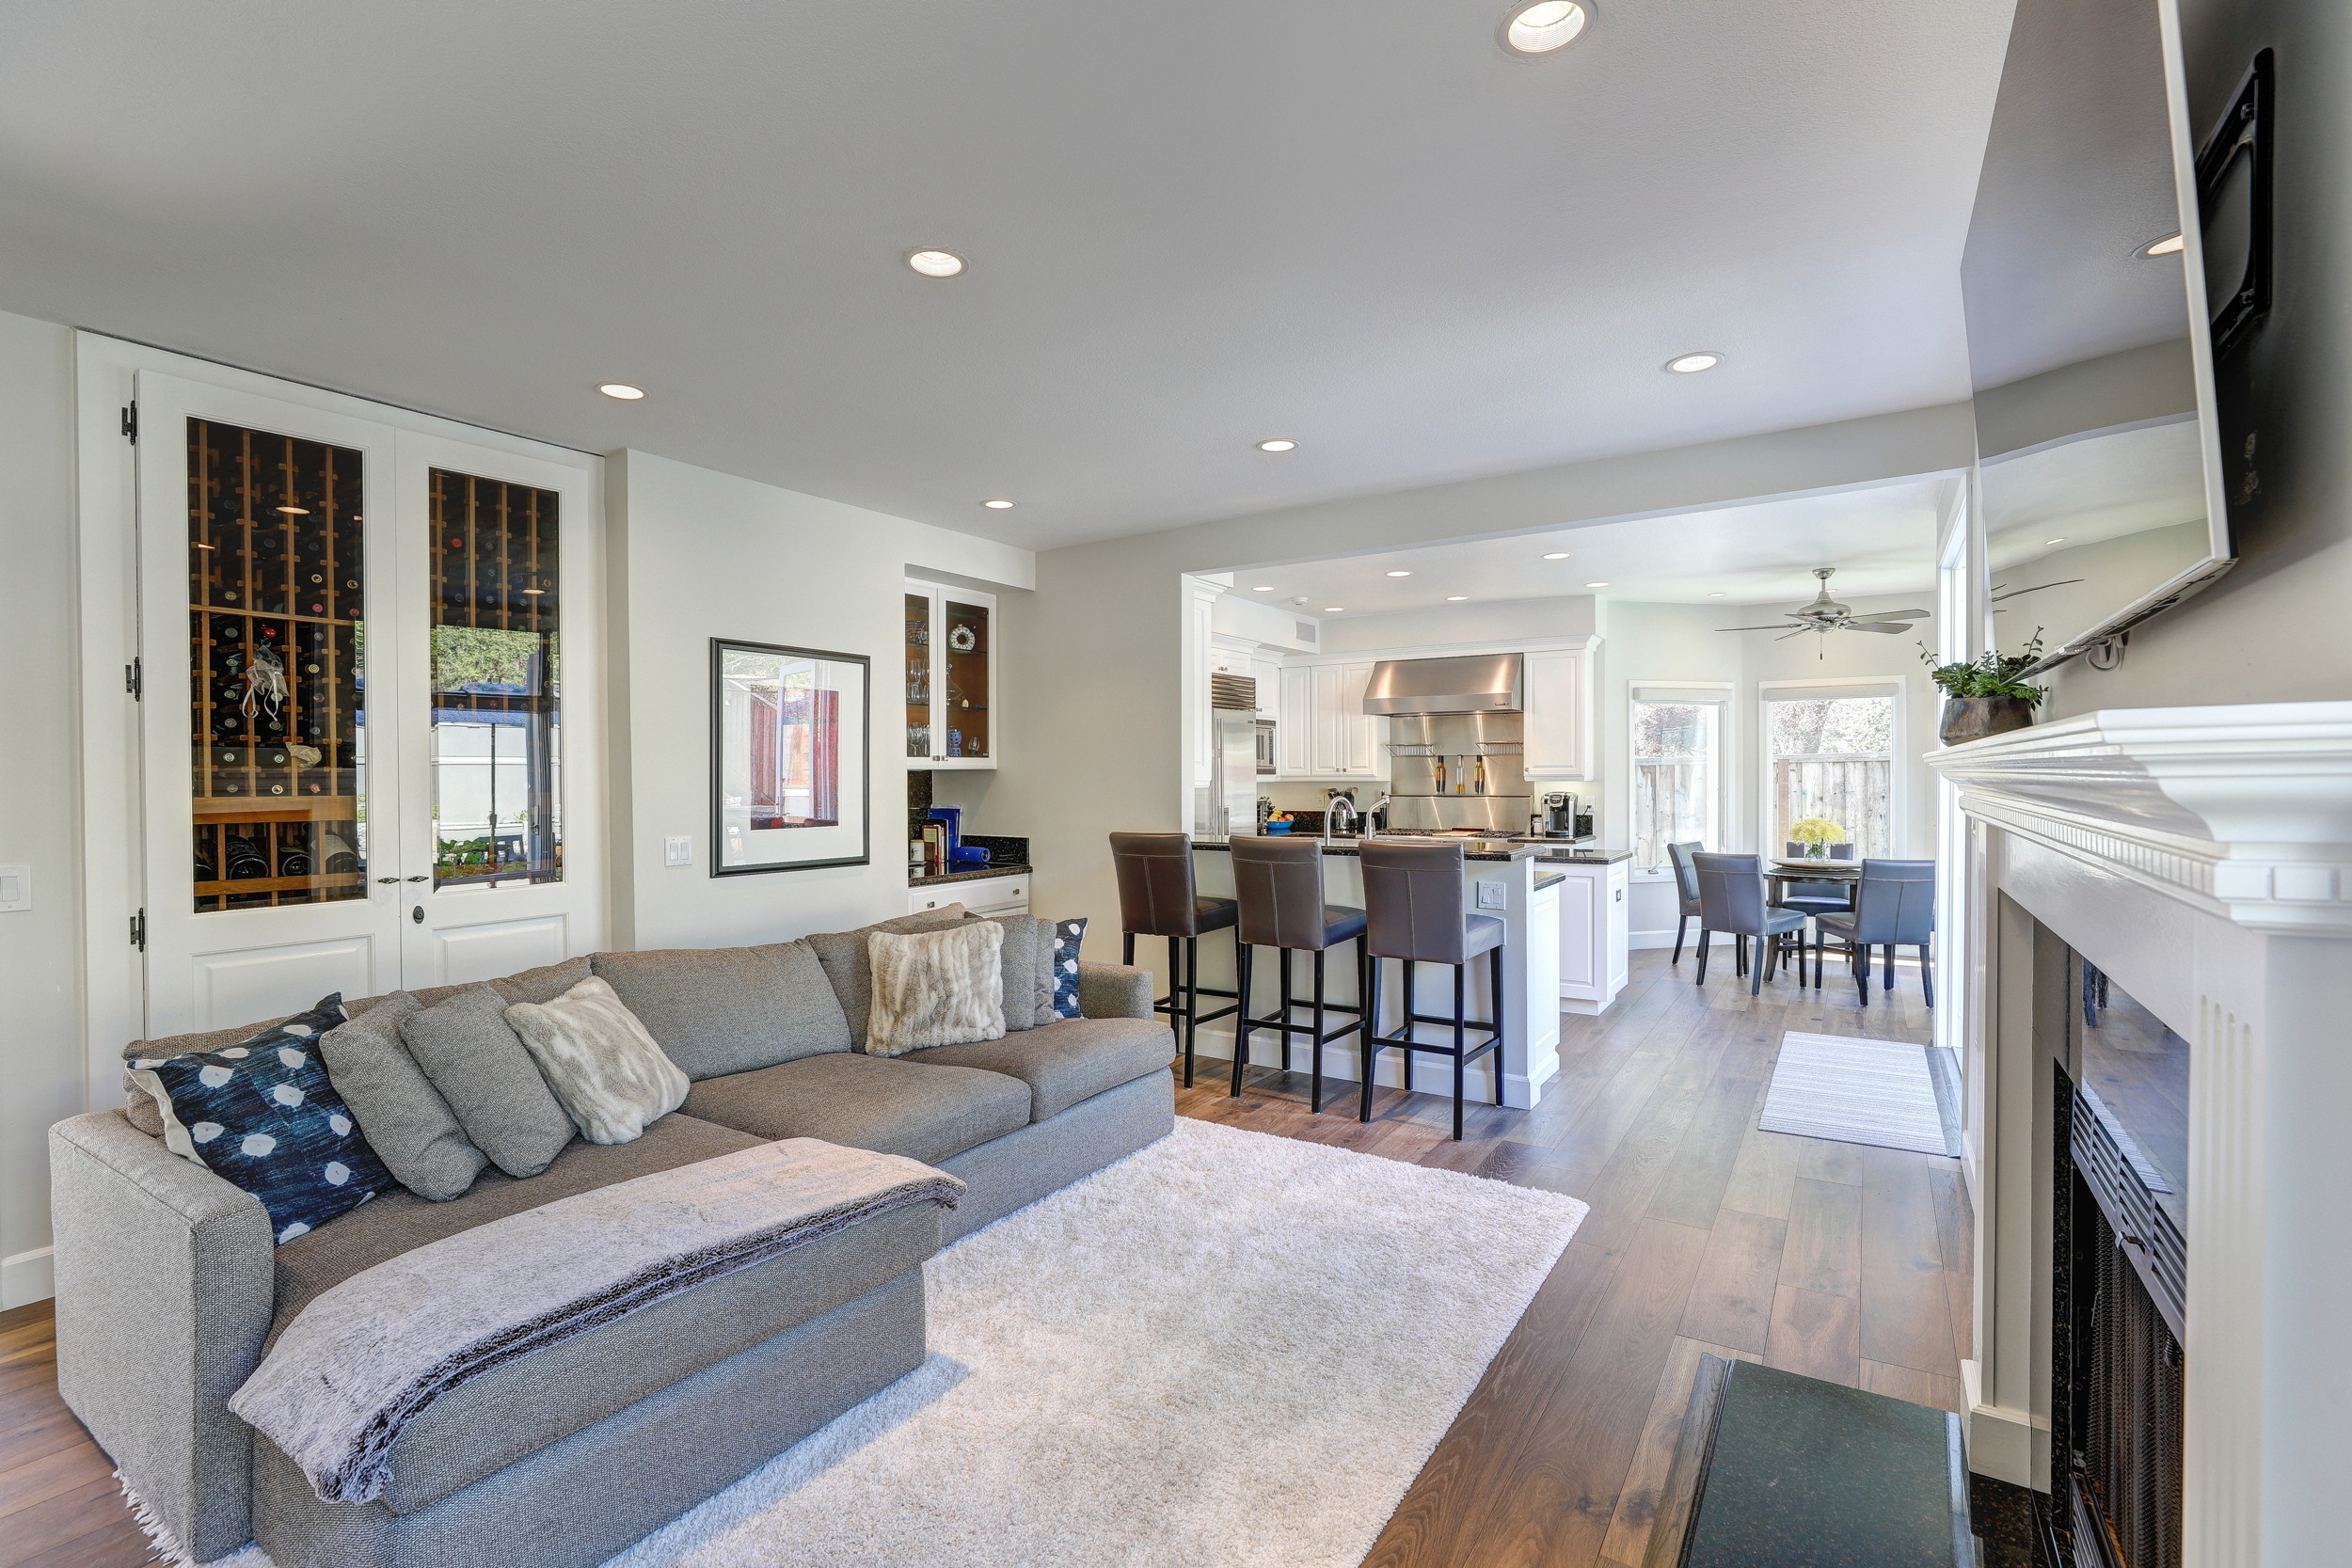 8Parkside 29 - Own Marin with Compass - Marin County Best Realtor.jpg